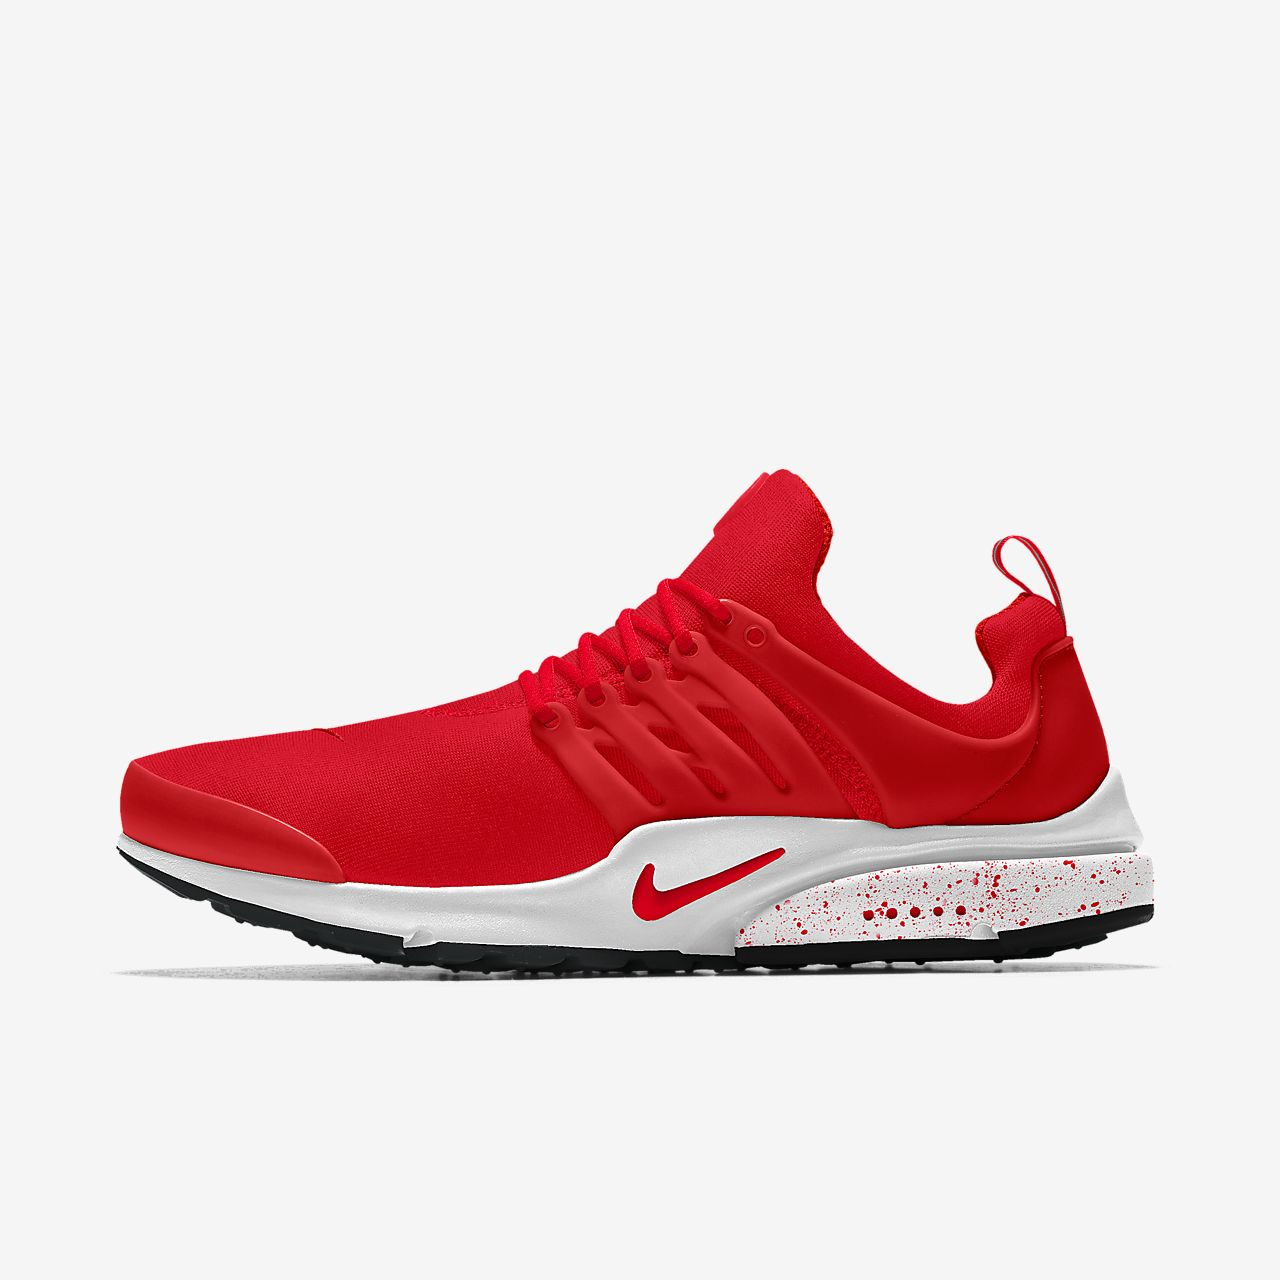 Nike Air Presto iD Women's Shoe